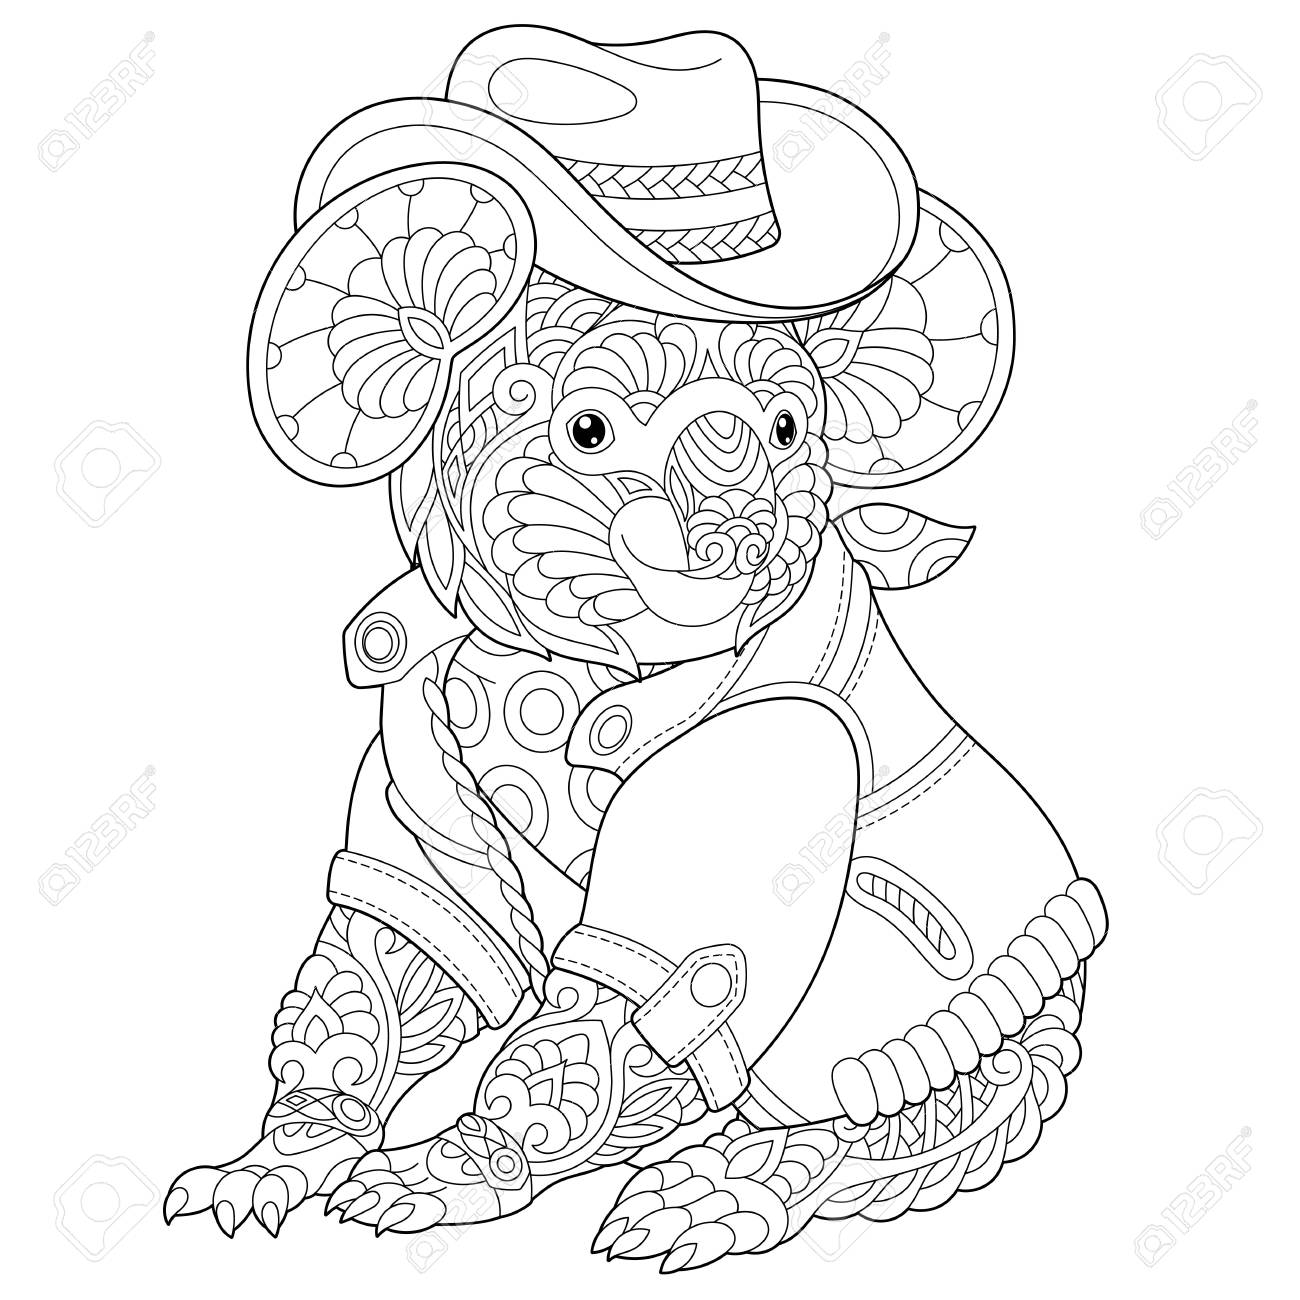 Coloring Page Coloring Book Anti Stress Colouring Picture With Royalty Free Cliparts Vectors And Stock Illustration Image 118879871